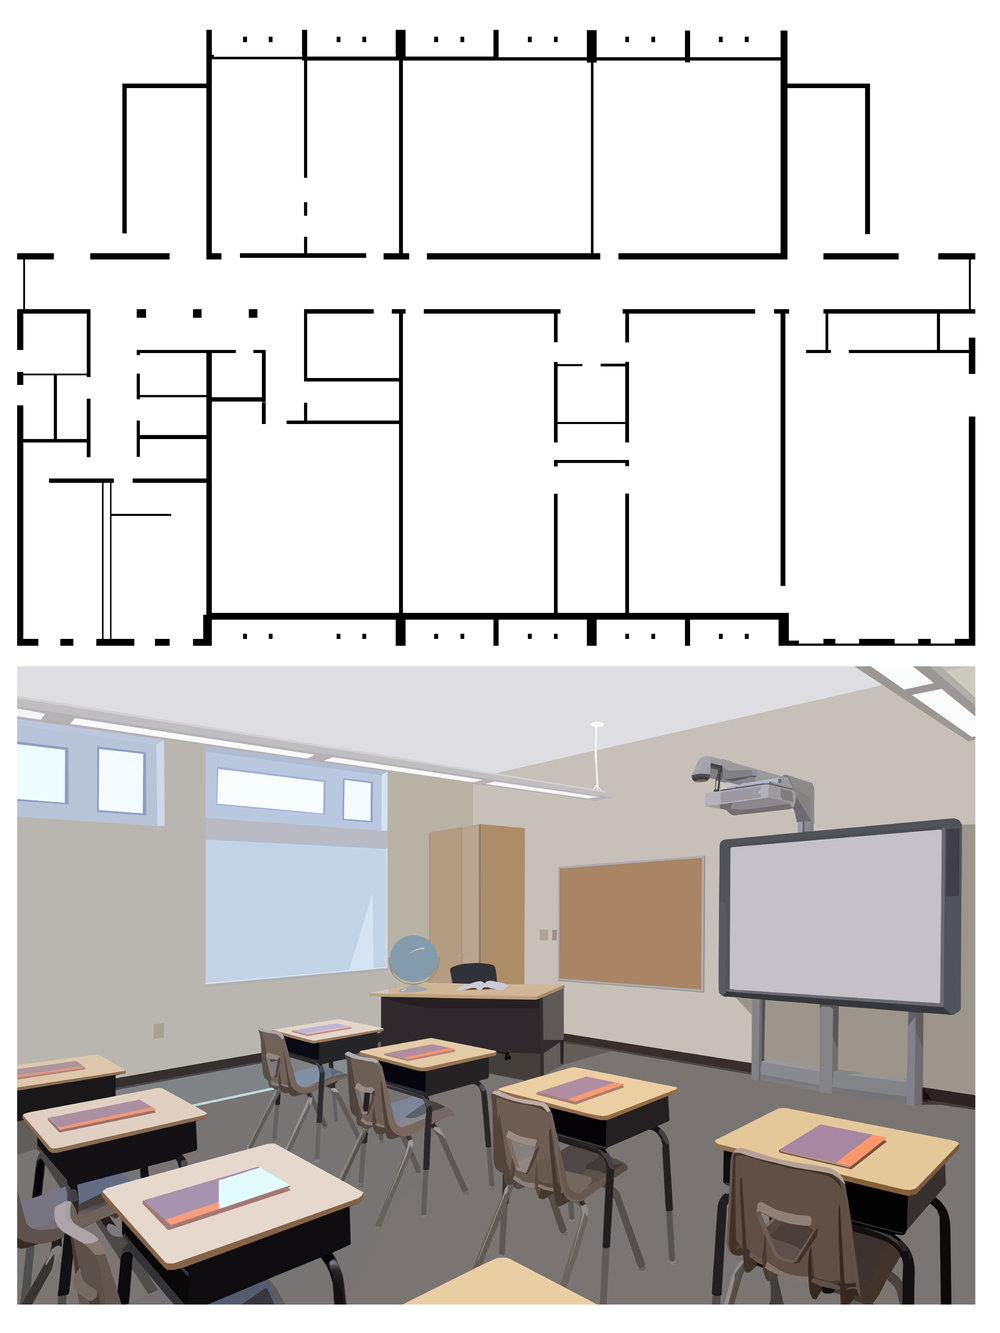 MIDDLE SCHOOL CLASSROOM